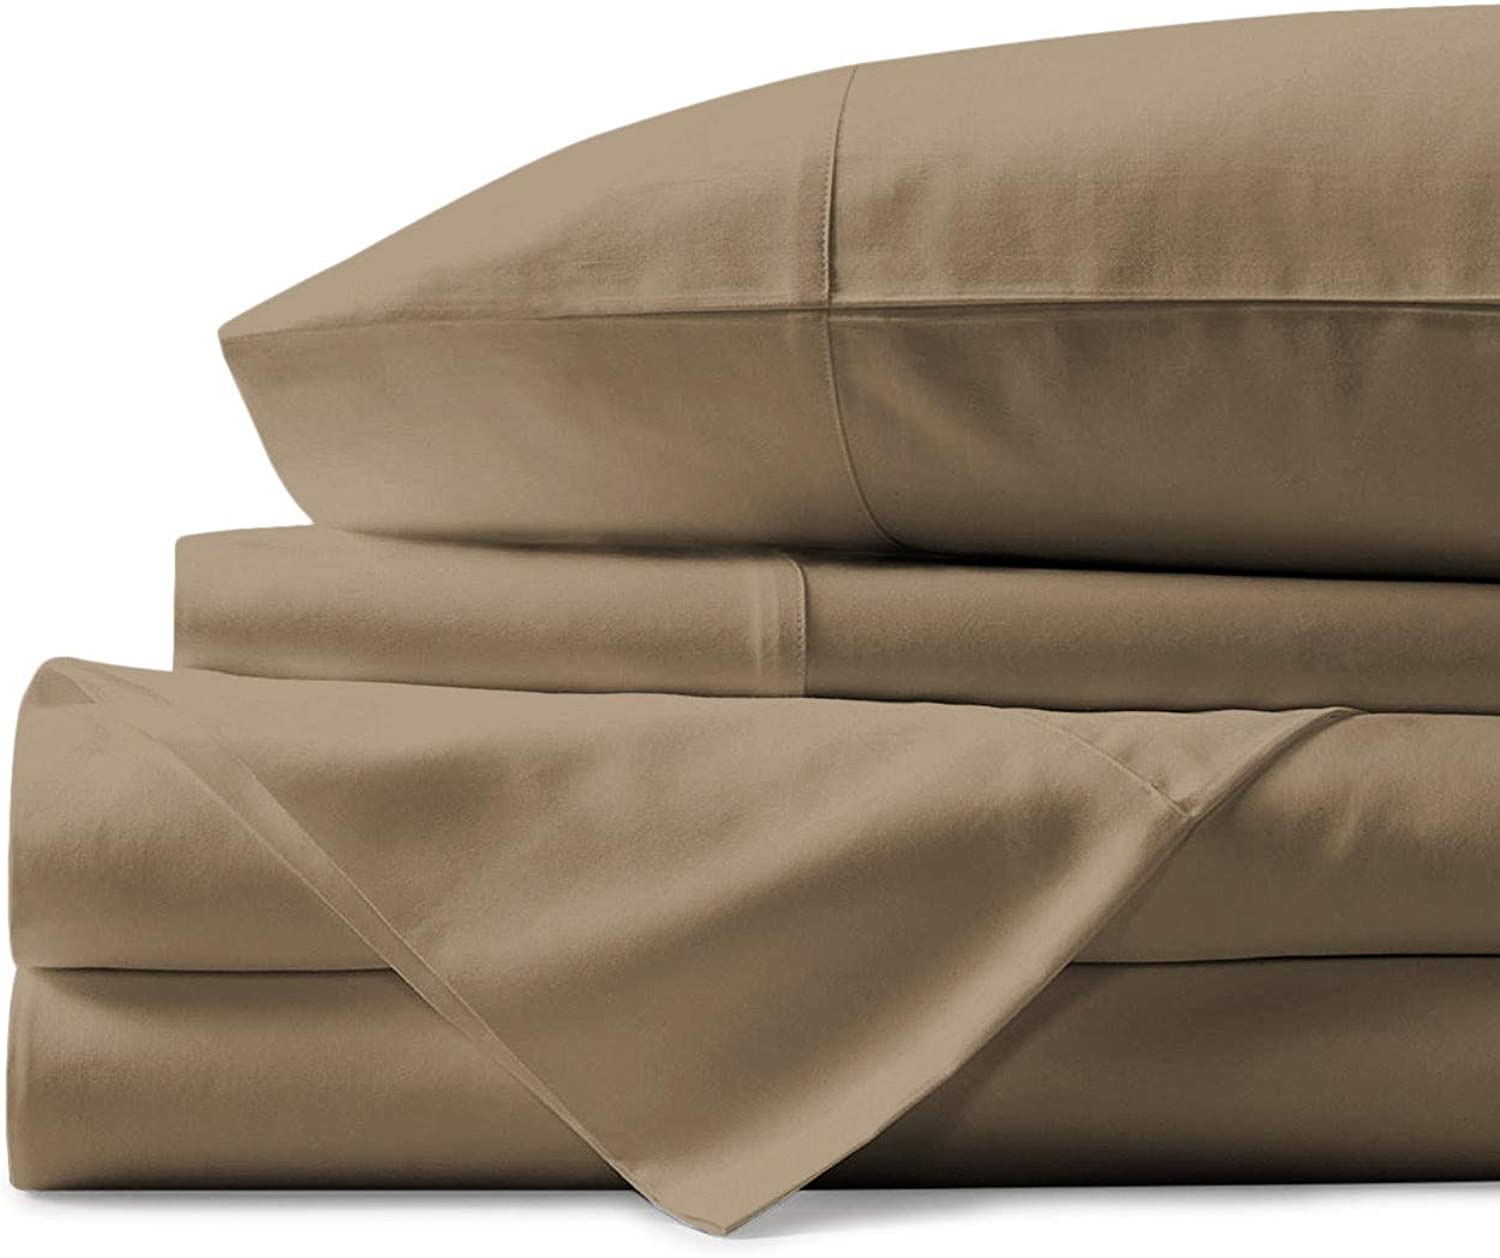 Mayfair Linen Hotel Collection 100% Egyptian Cotton- Genuine 800Tc Sheet Set (California King, Taupe)